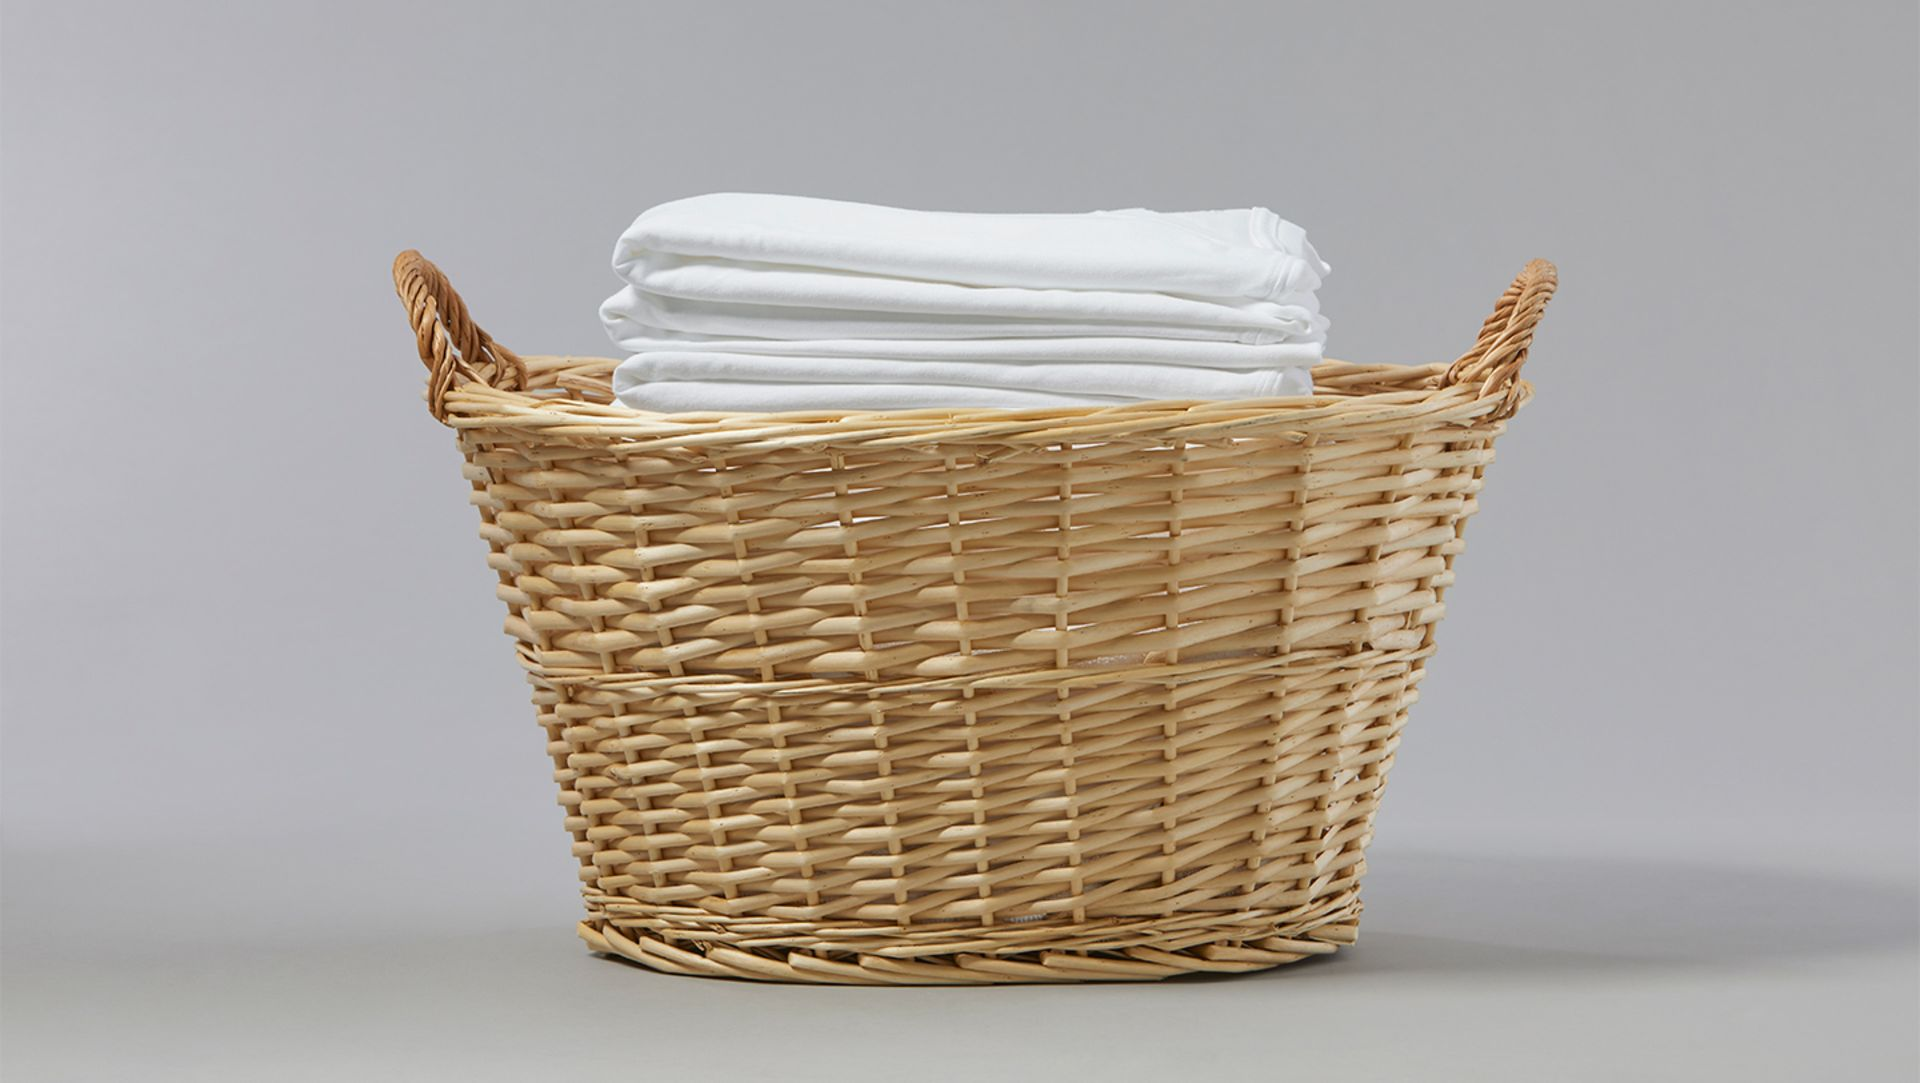 A woven laundry basket full of neatly folded, white garments